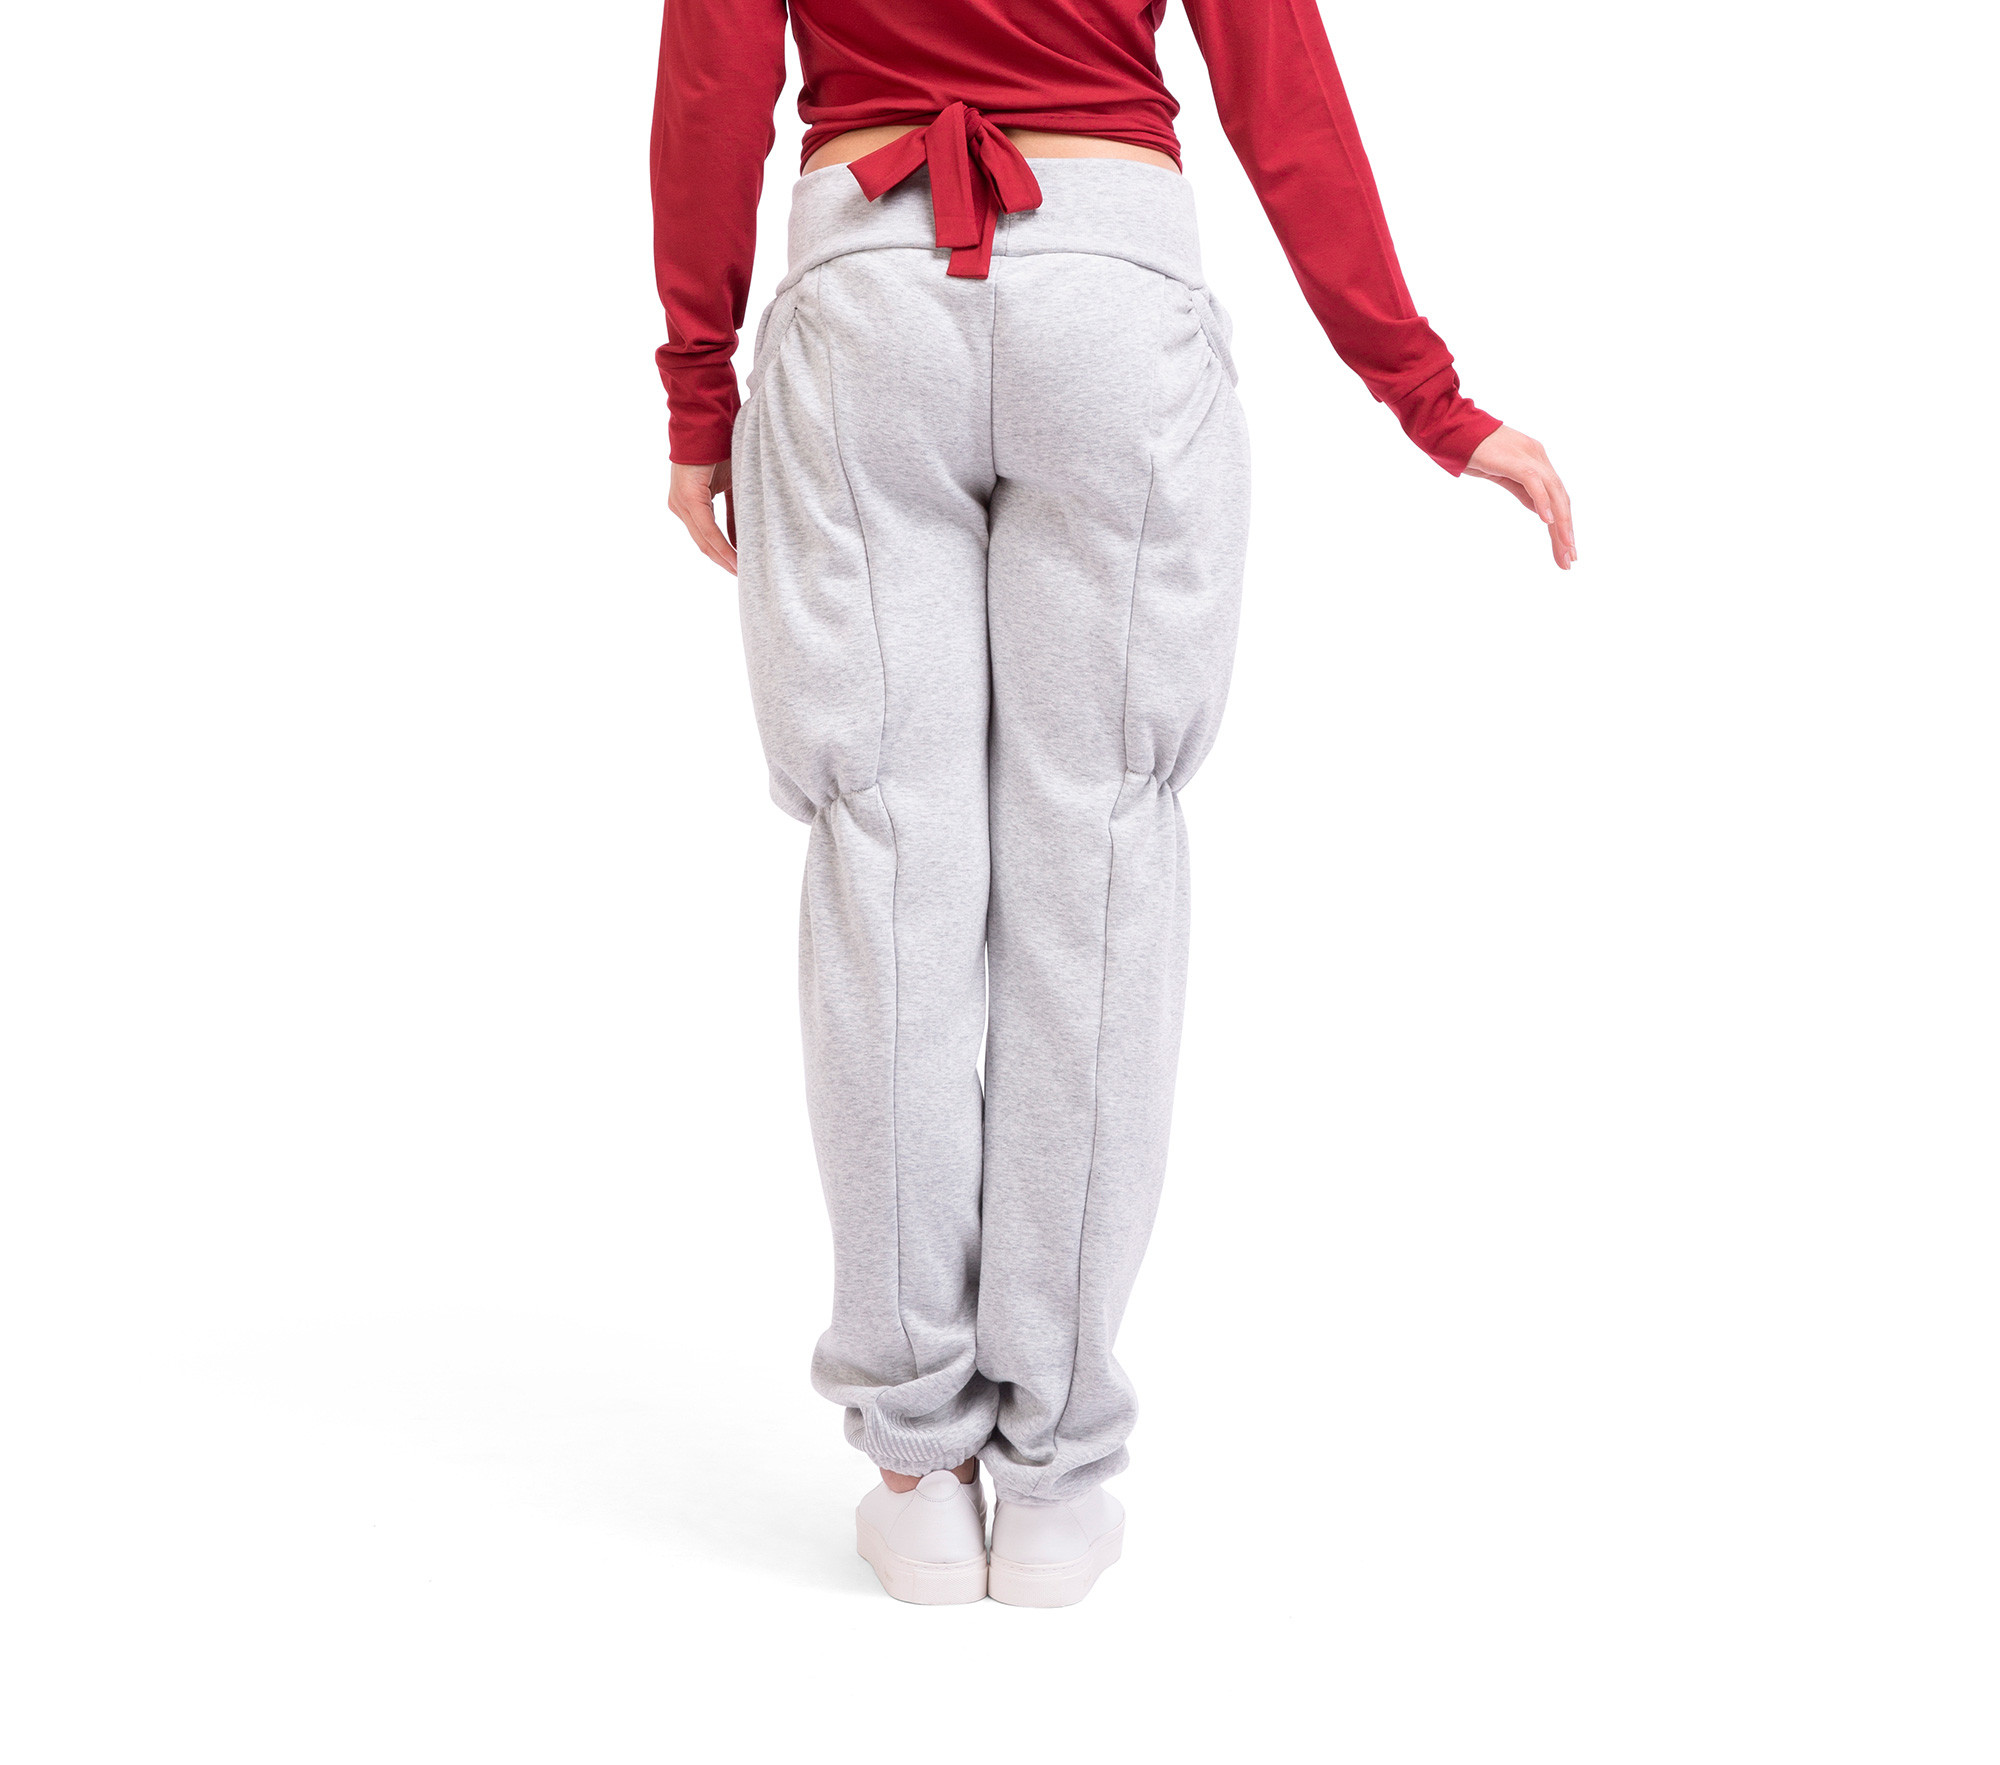 Brushed cotton warm-up trousers with soft lining